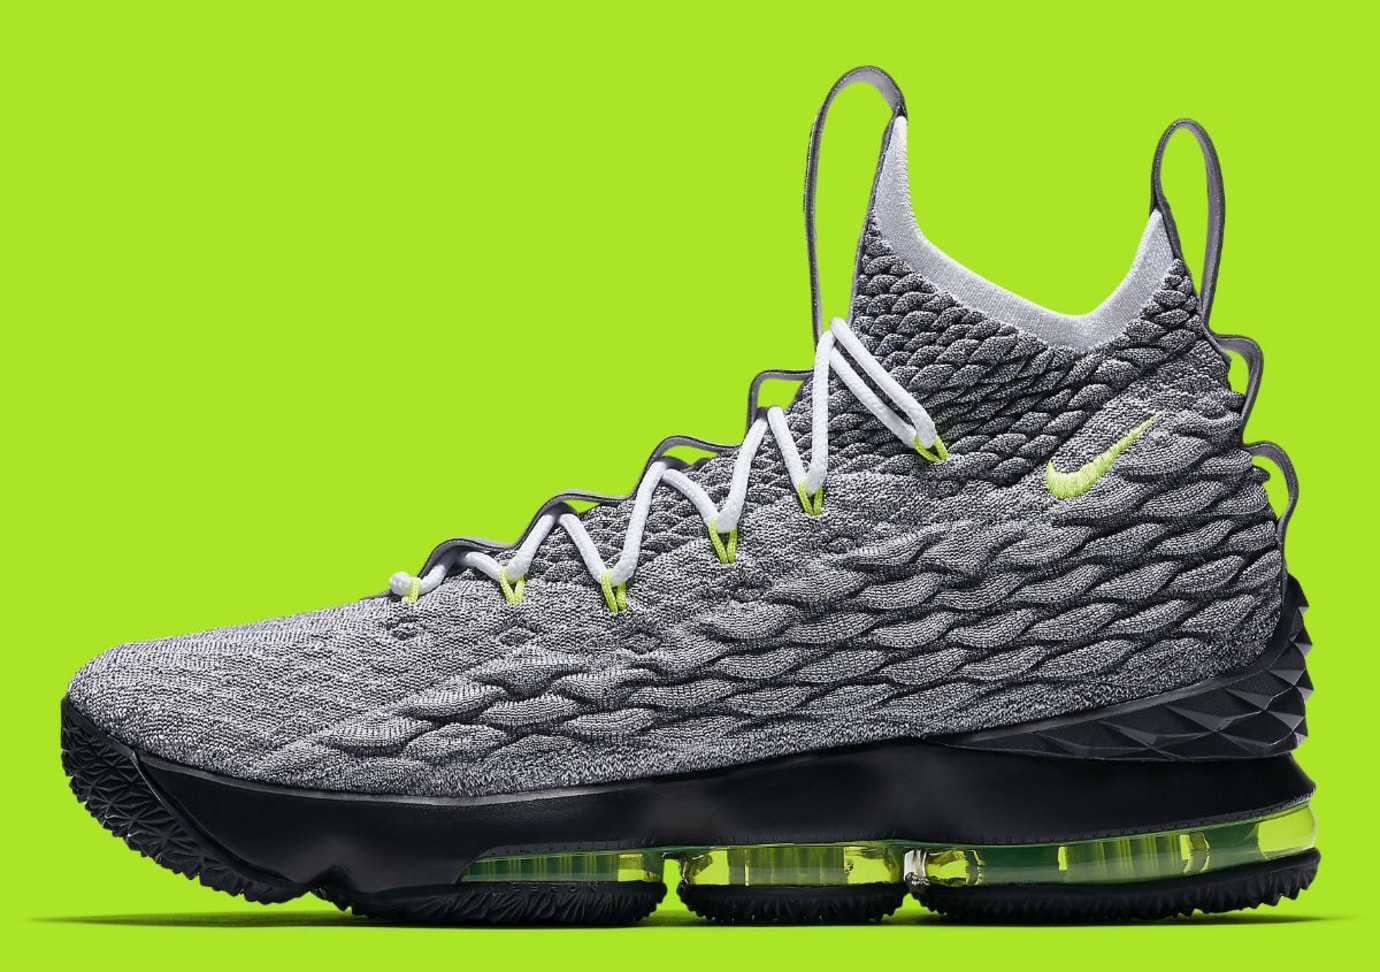 huge discount be050 8339f Nike LeBron 15 Air Max 95 Neon Release Date AR4831-001 Main ...